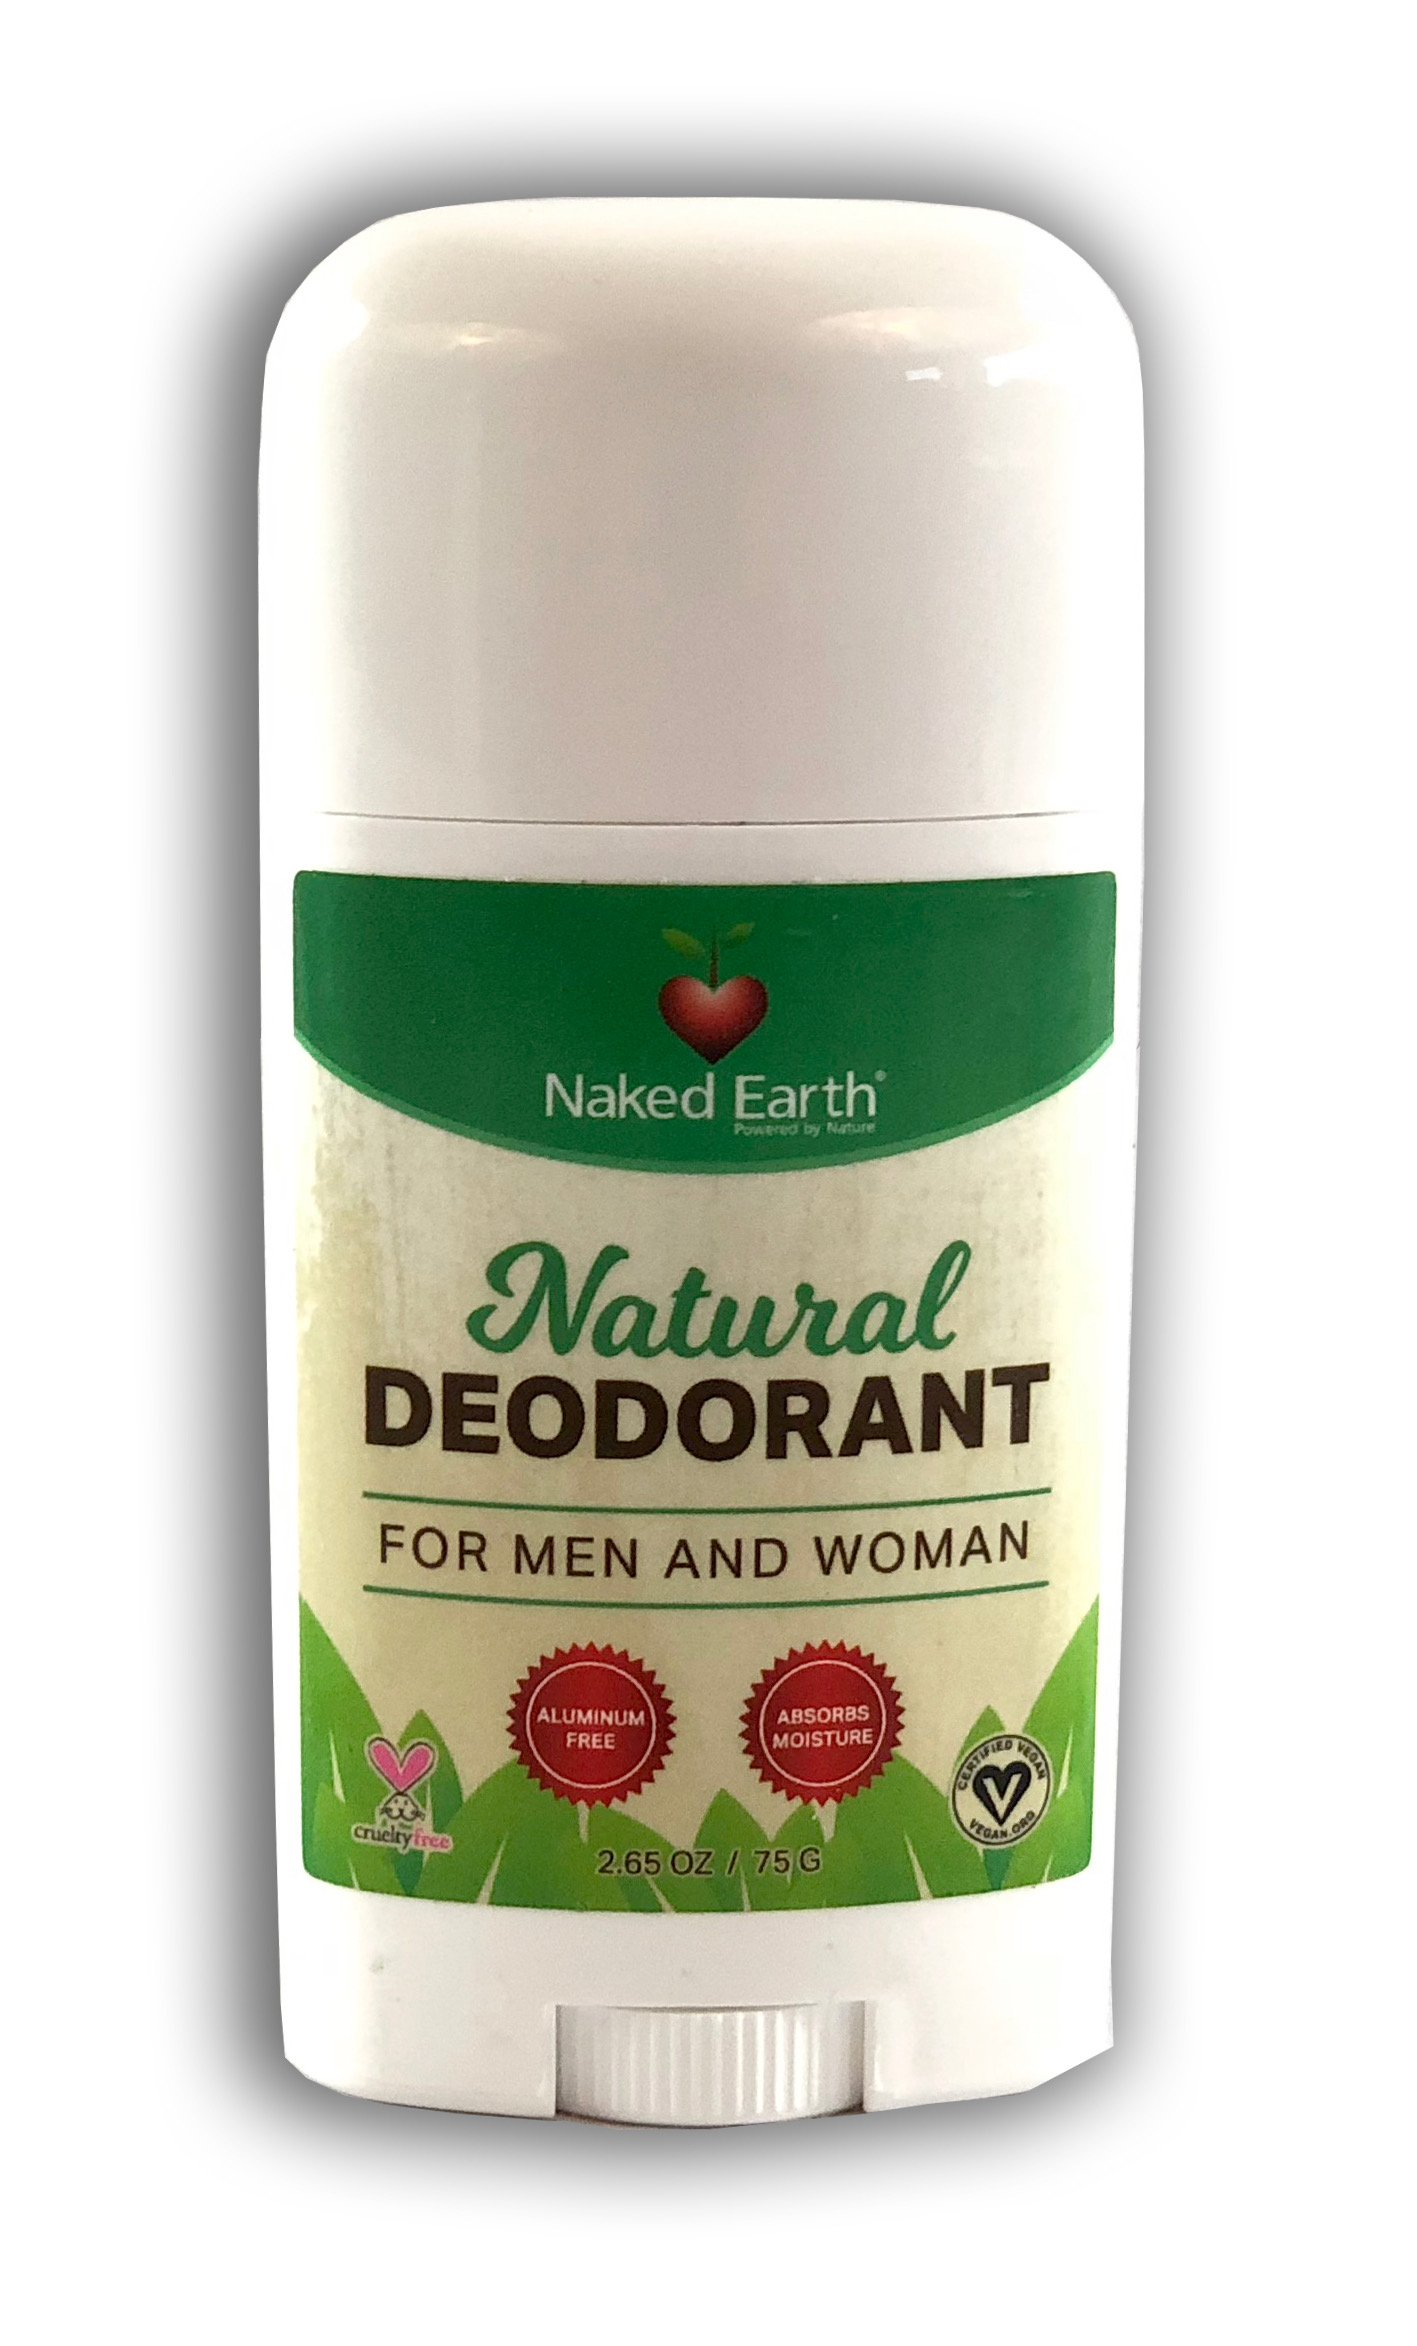 Naked Earth's Natural Deodorant For Men and Women, Guaranteed to Work! Aluminum Free!